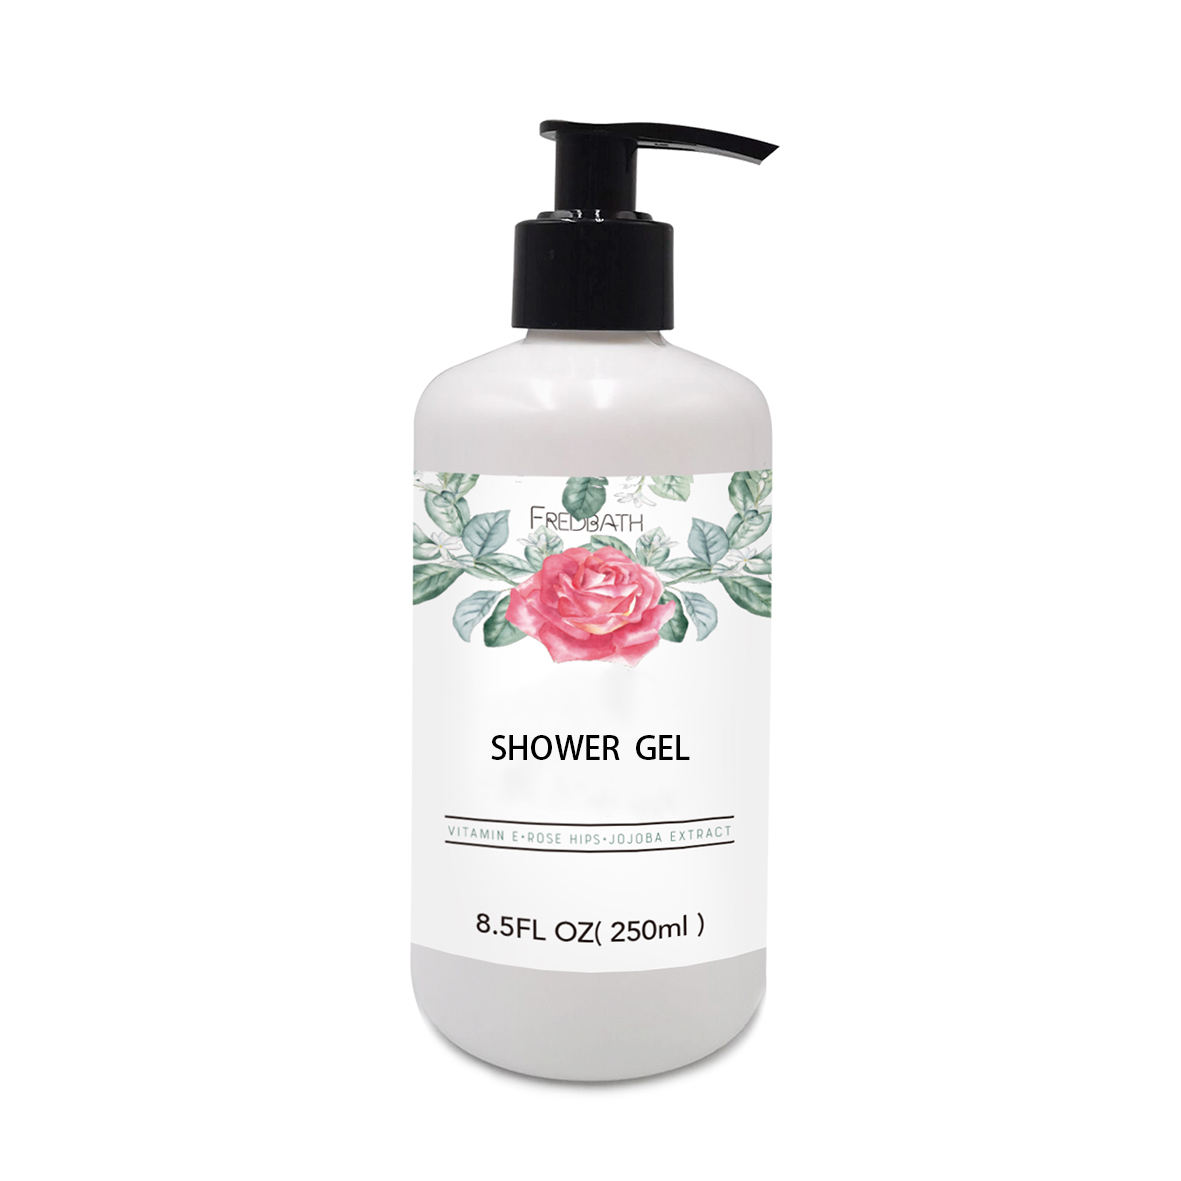 Wholesale Bath And Body Works Good Maker Oem Lightening Moisturizer Bathroom Spa Body Wash Shower Gel